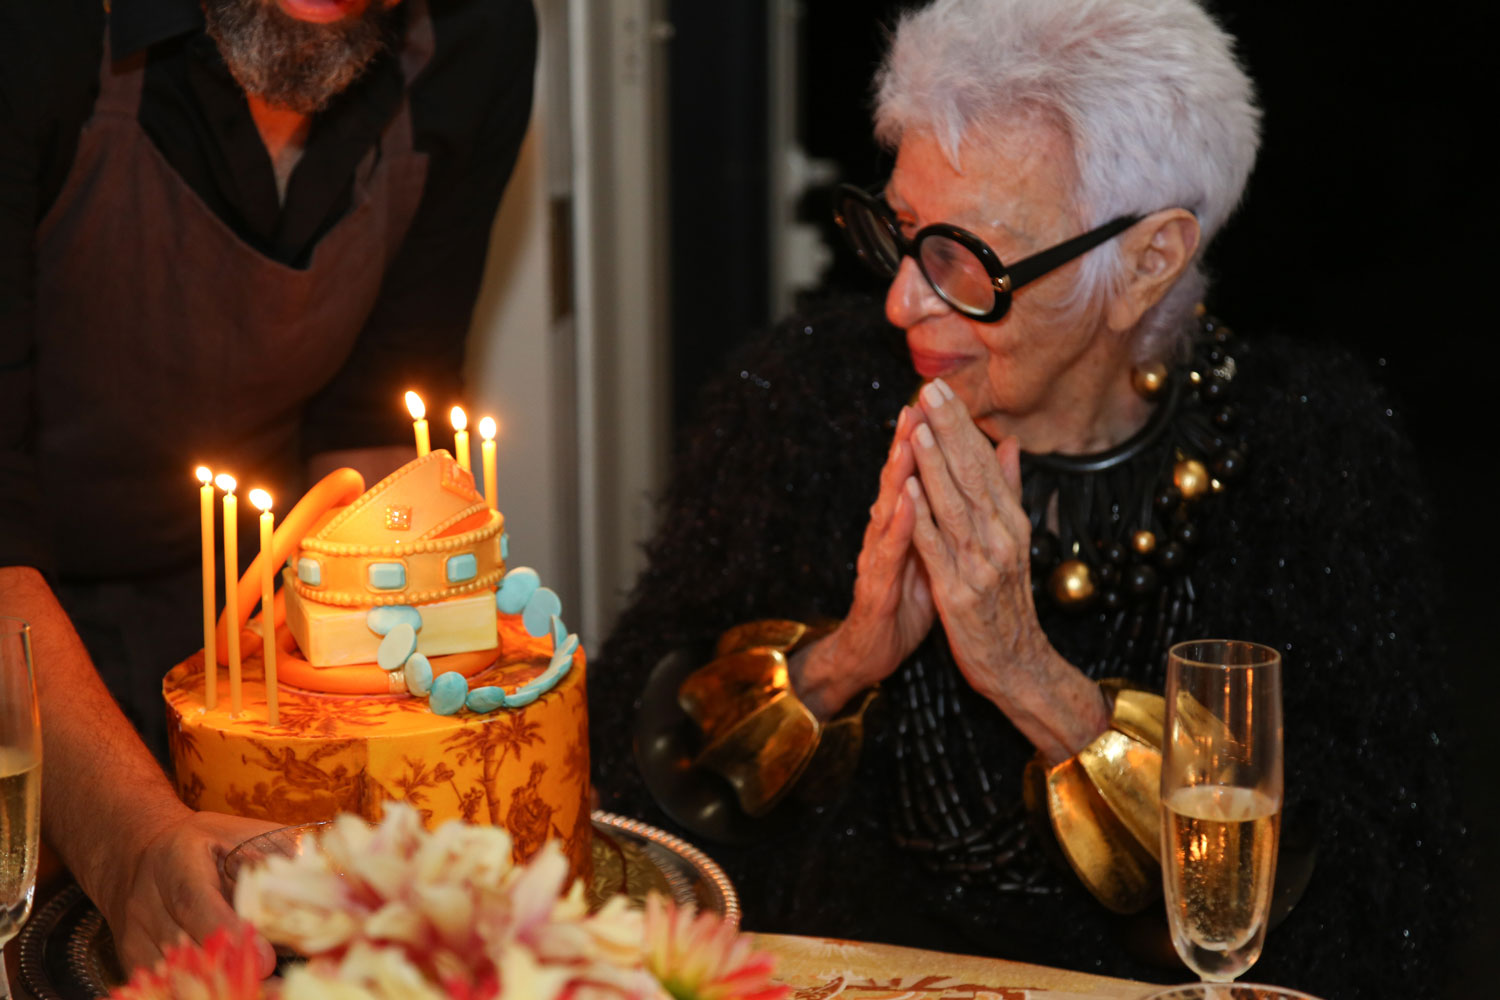 This Though Was Not A Big Bash But Small Intimate Dinner At Our Home With Fashion Icon Iris Apfel On Her 95th Birthday